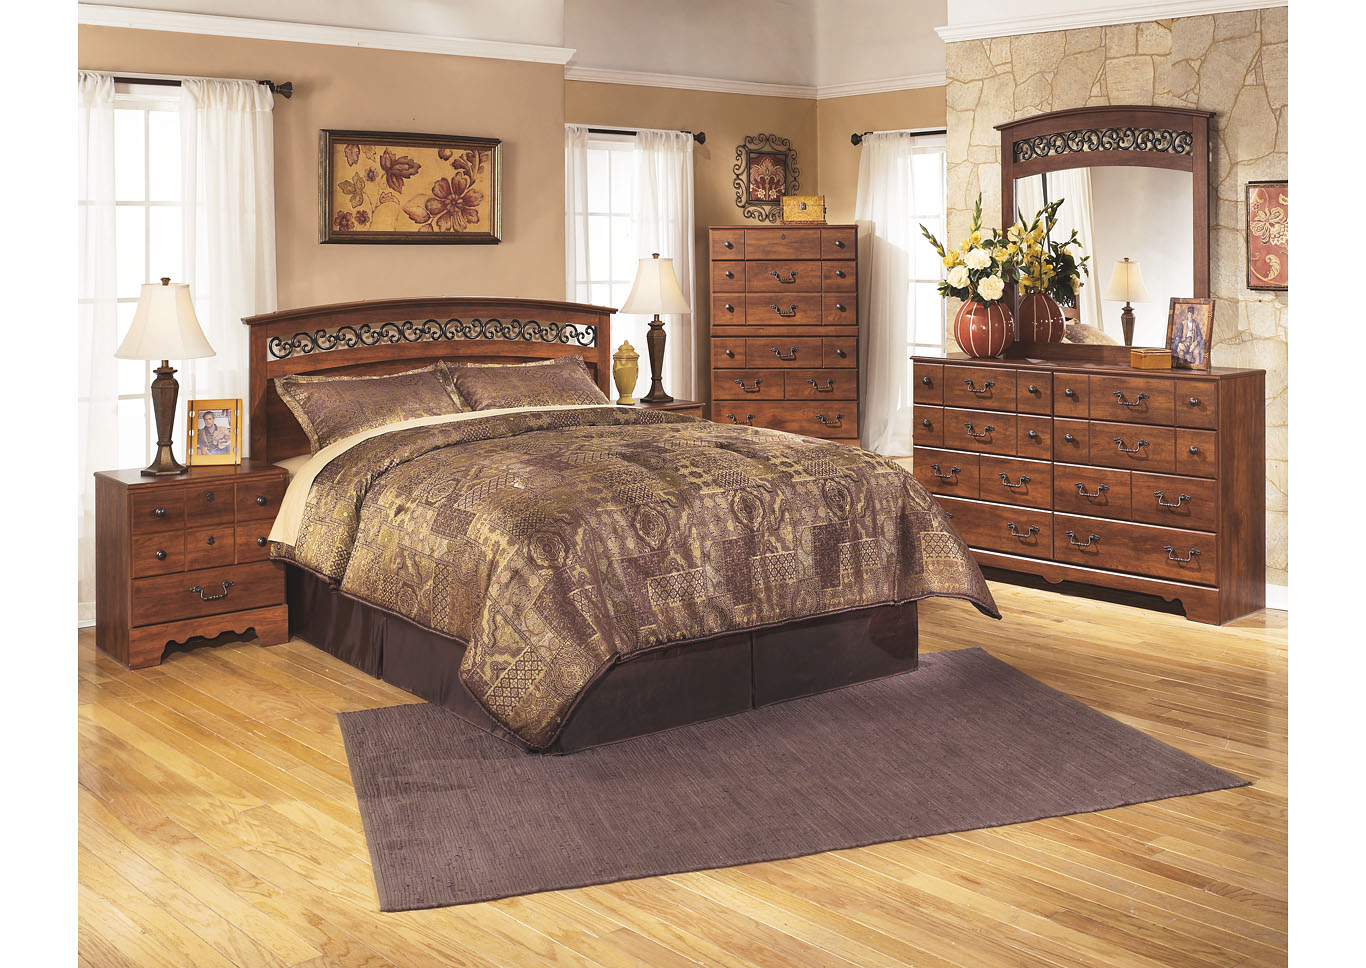 Timberline Queen/Full Panel Headboard w/Dresser, Mirror & Drawer Chest,Signature Design By Ashley